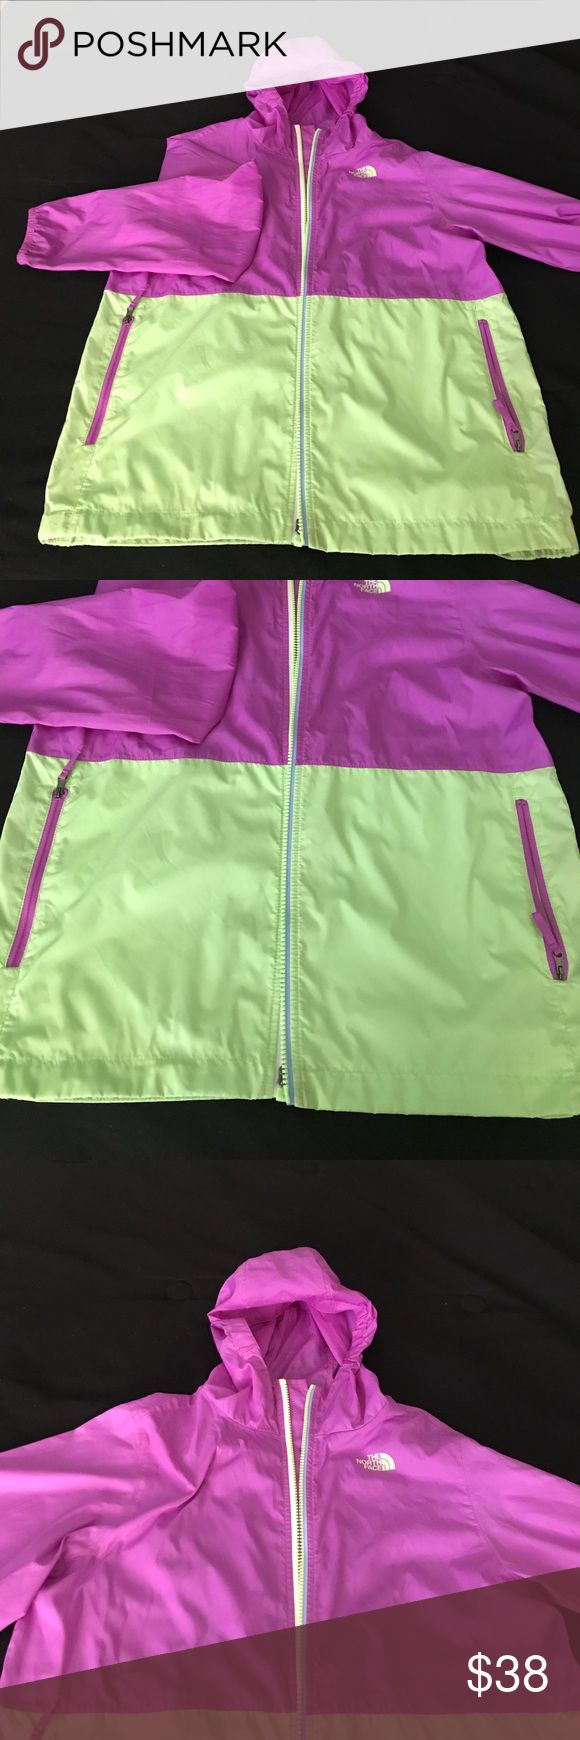 North Face Windbreaker Big Girls North Face Windbreaker with hood. Size XL, 16. Ombre style jacket. Purple & Lime Green. Excellent Condition North Face Jackets & Coats